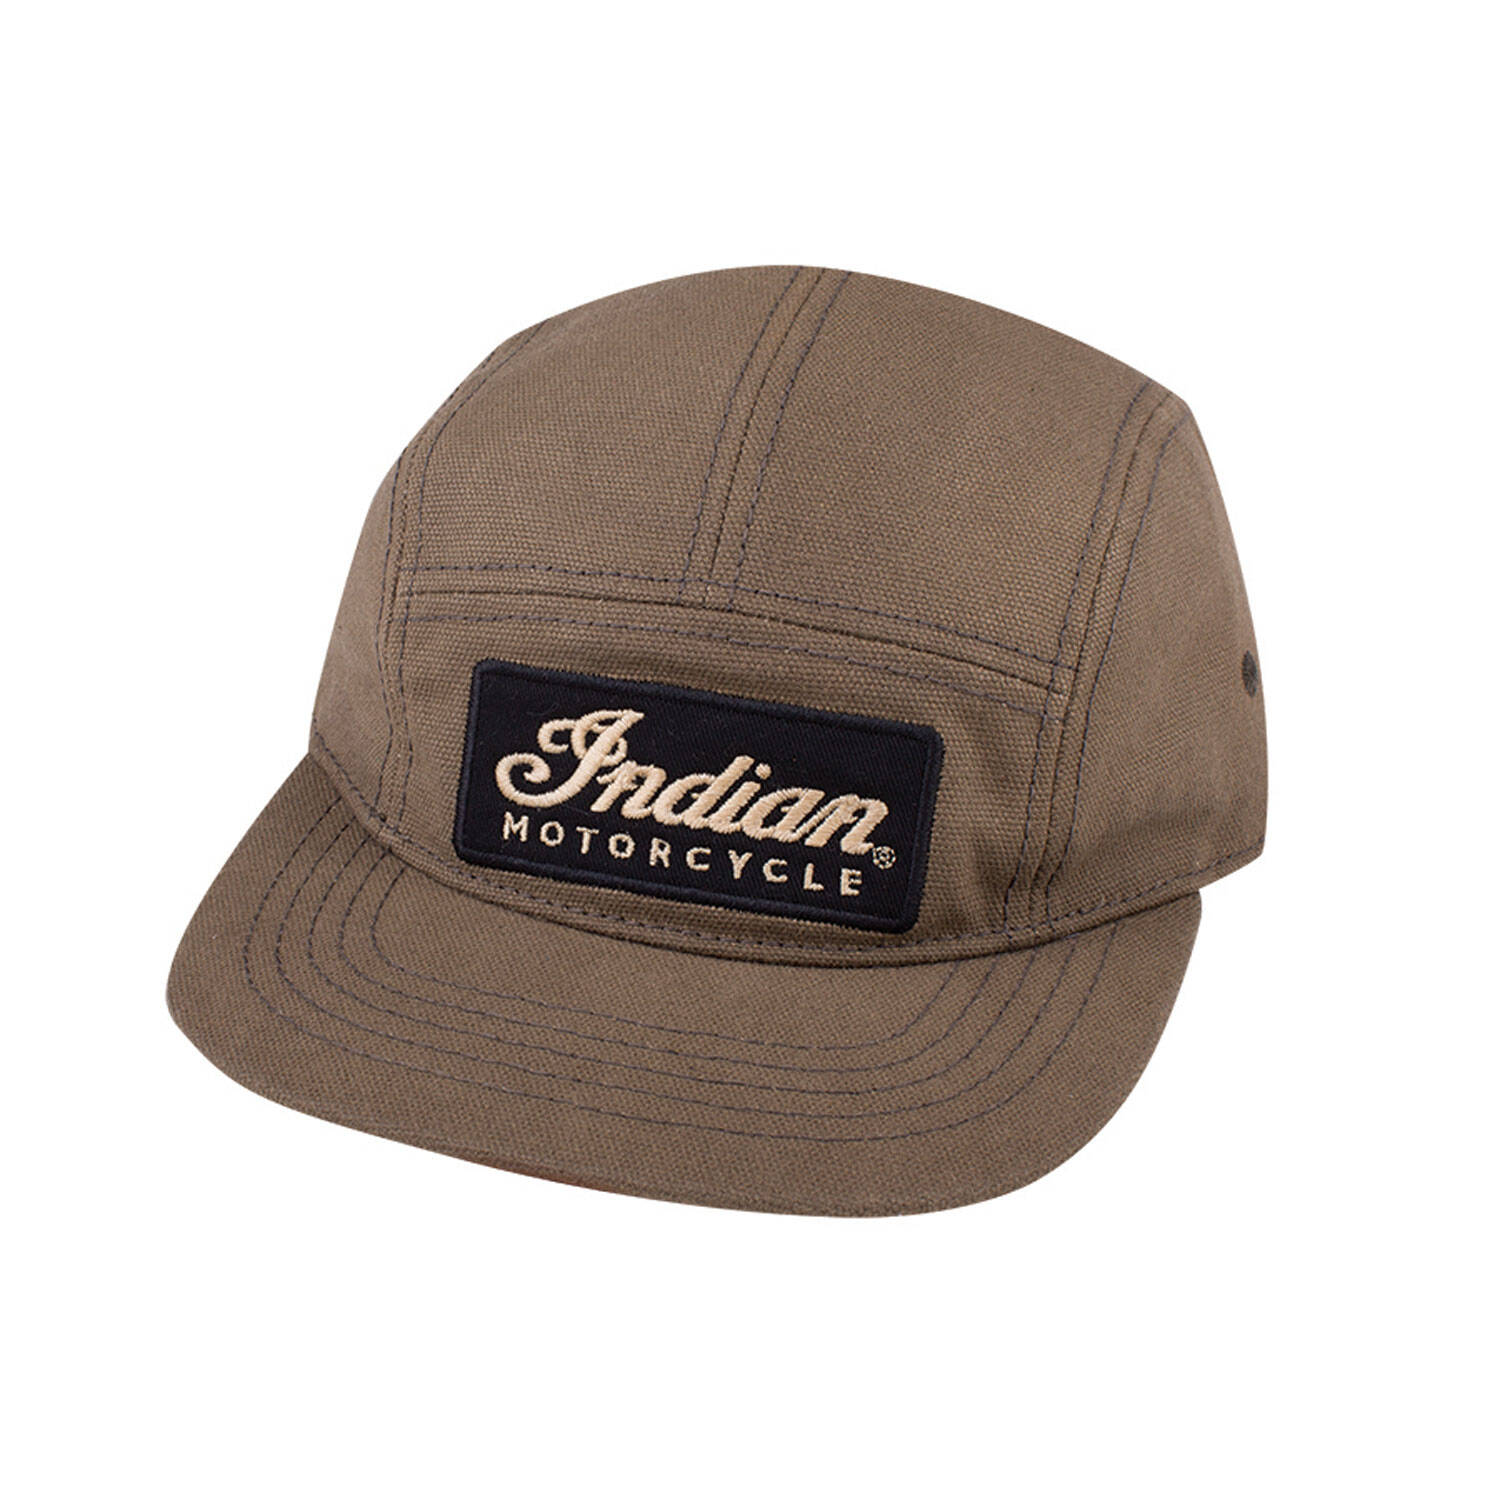 Flatbill Waxed Cotton Hat with Adjustable Leather Strap, Olive